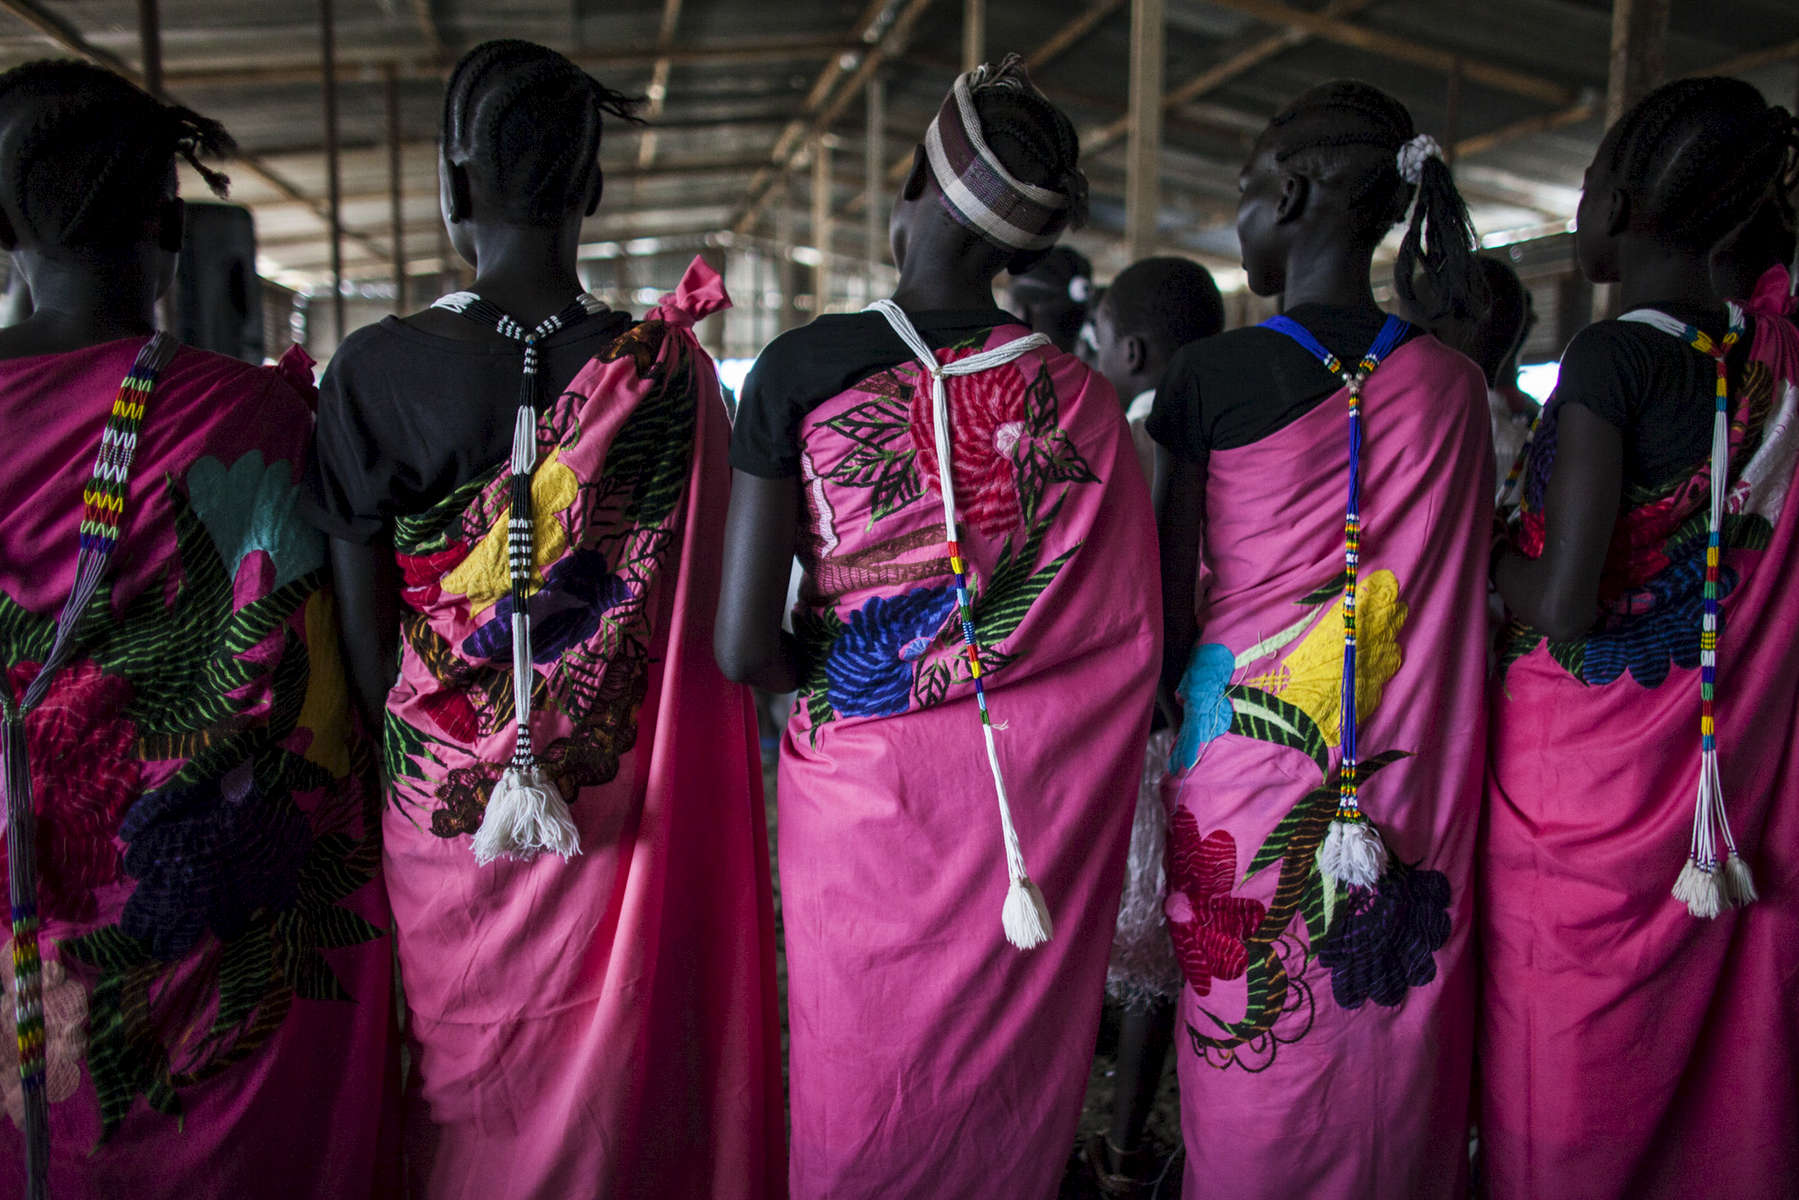 Church members pray at the Dolieb Hill Presbyterian Church in the Protection of Civilians (POC) site at the United Nations Mission in South Sudan (UNMISS) compound in Malakal, South Sudan on Saturday, July 9, 2016. The Malakal POC site houses over 32,000 displaced people mainly from the Shilluk and Nuer tribes. In February of this year, members of the Dinka tribe, who resided in the camp at the time, carried out a coordinated attack within the site leading to the destruction of hundreds of shelters and many deaths. Since then, most members of the Dinka tribe have fled to Malakal town where they occupy the homes of those still displaced.